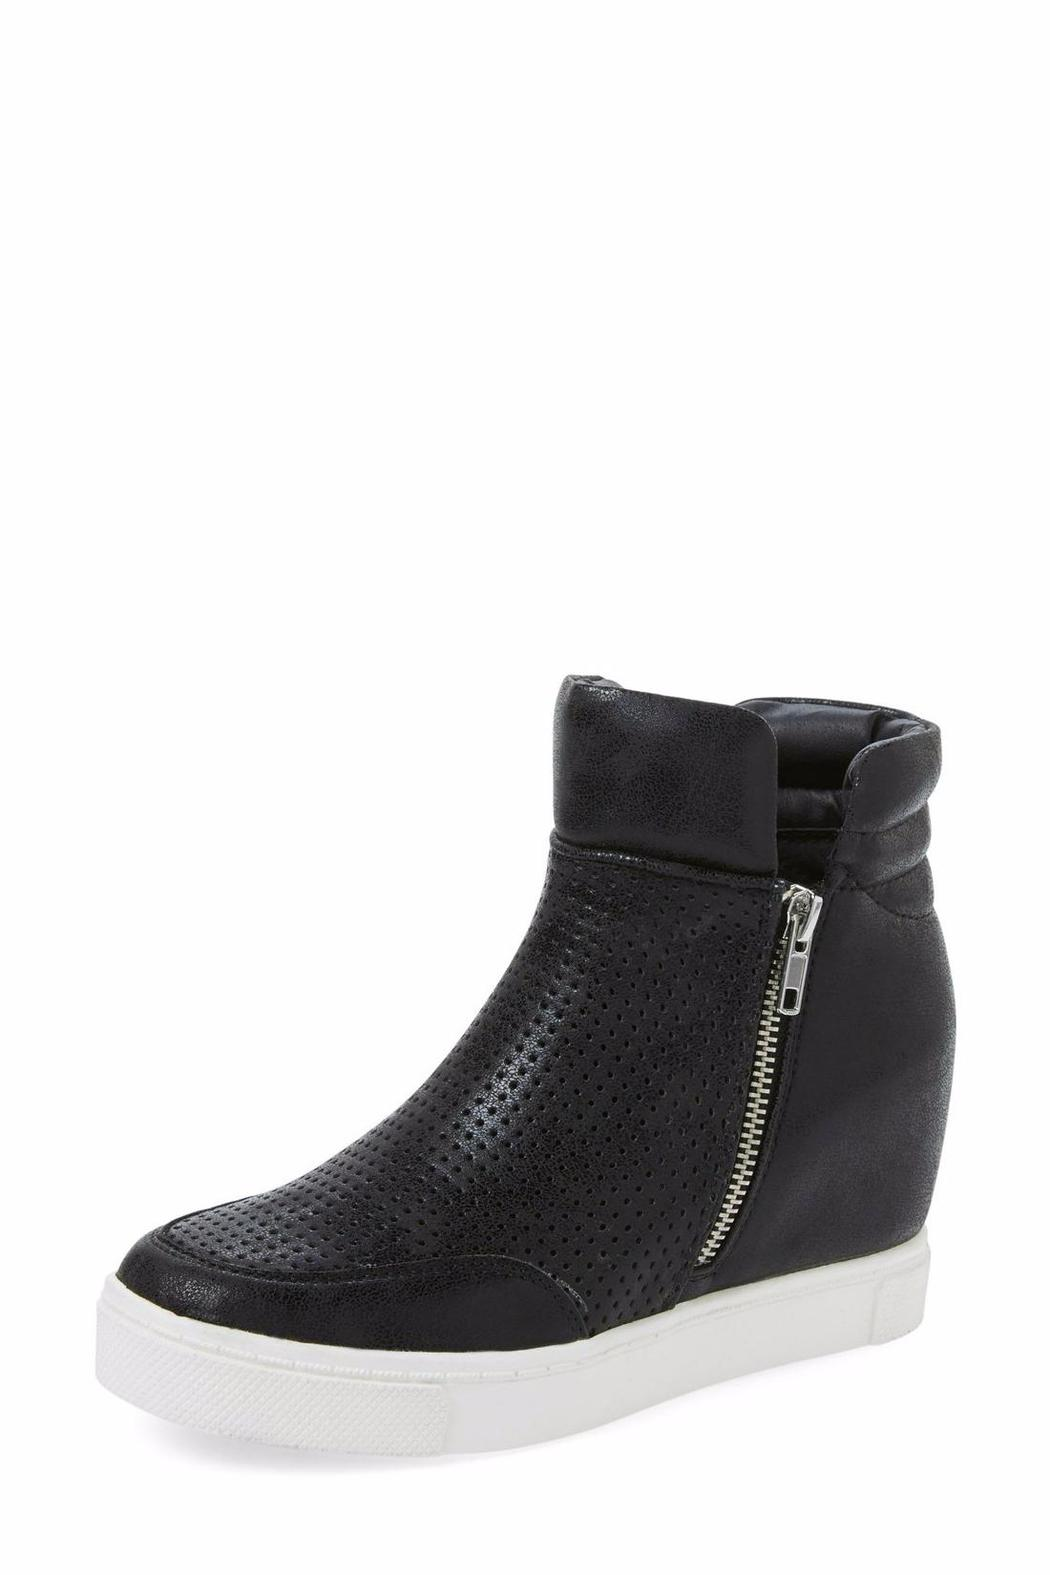 cb1665b65b7 Steve Madden Linqsp Wedge Sneaker from New Jersey by Tula the ...